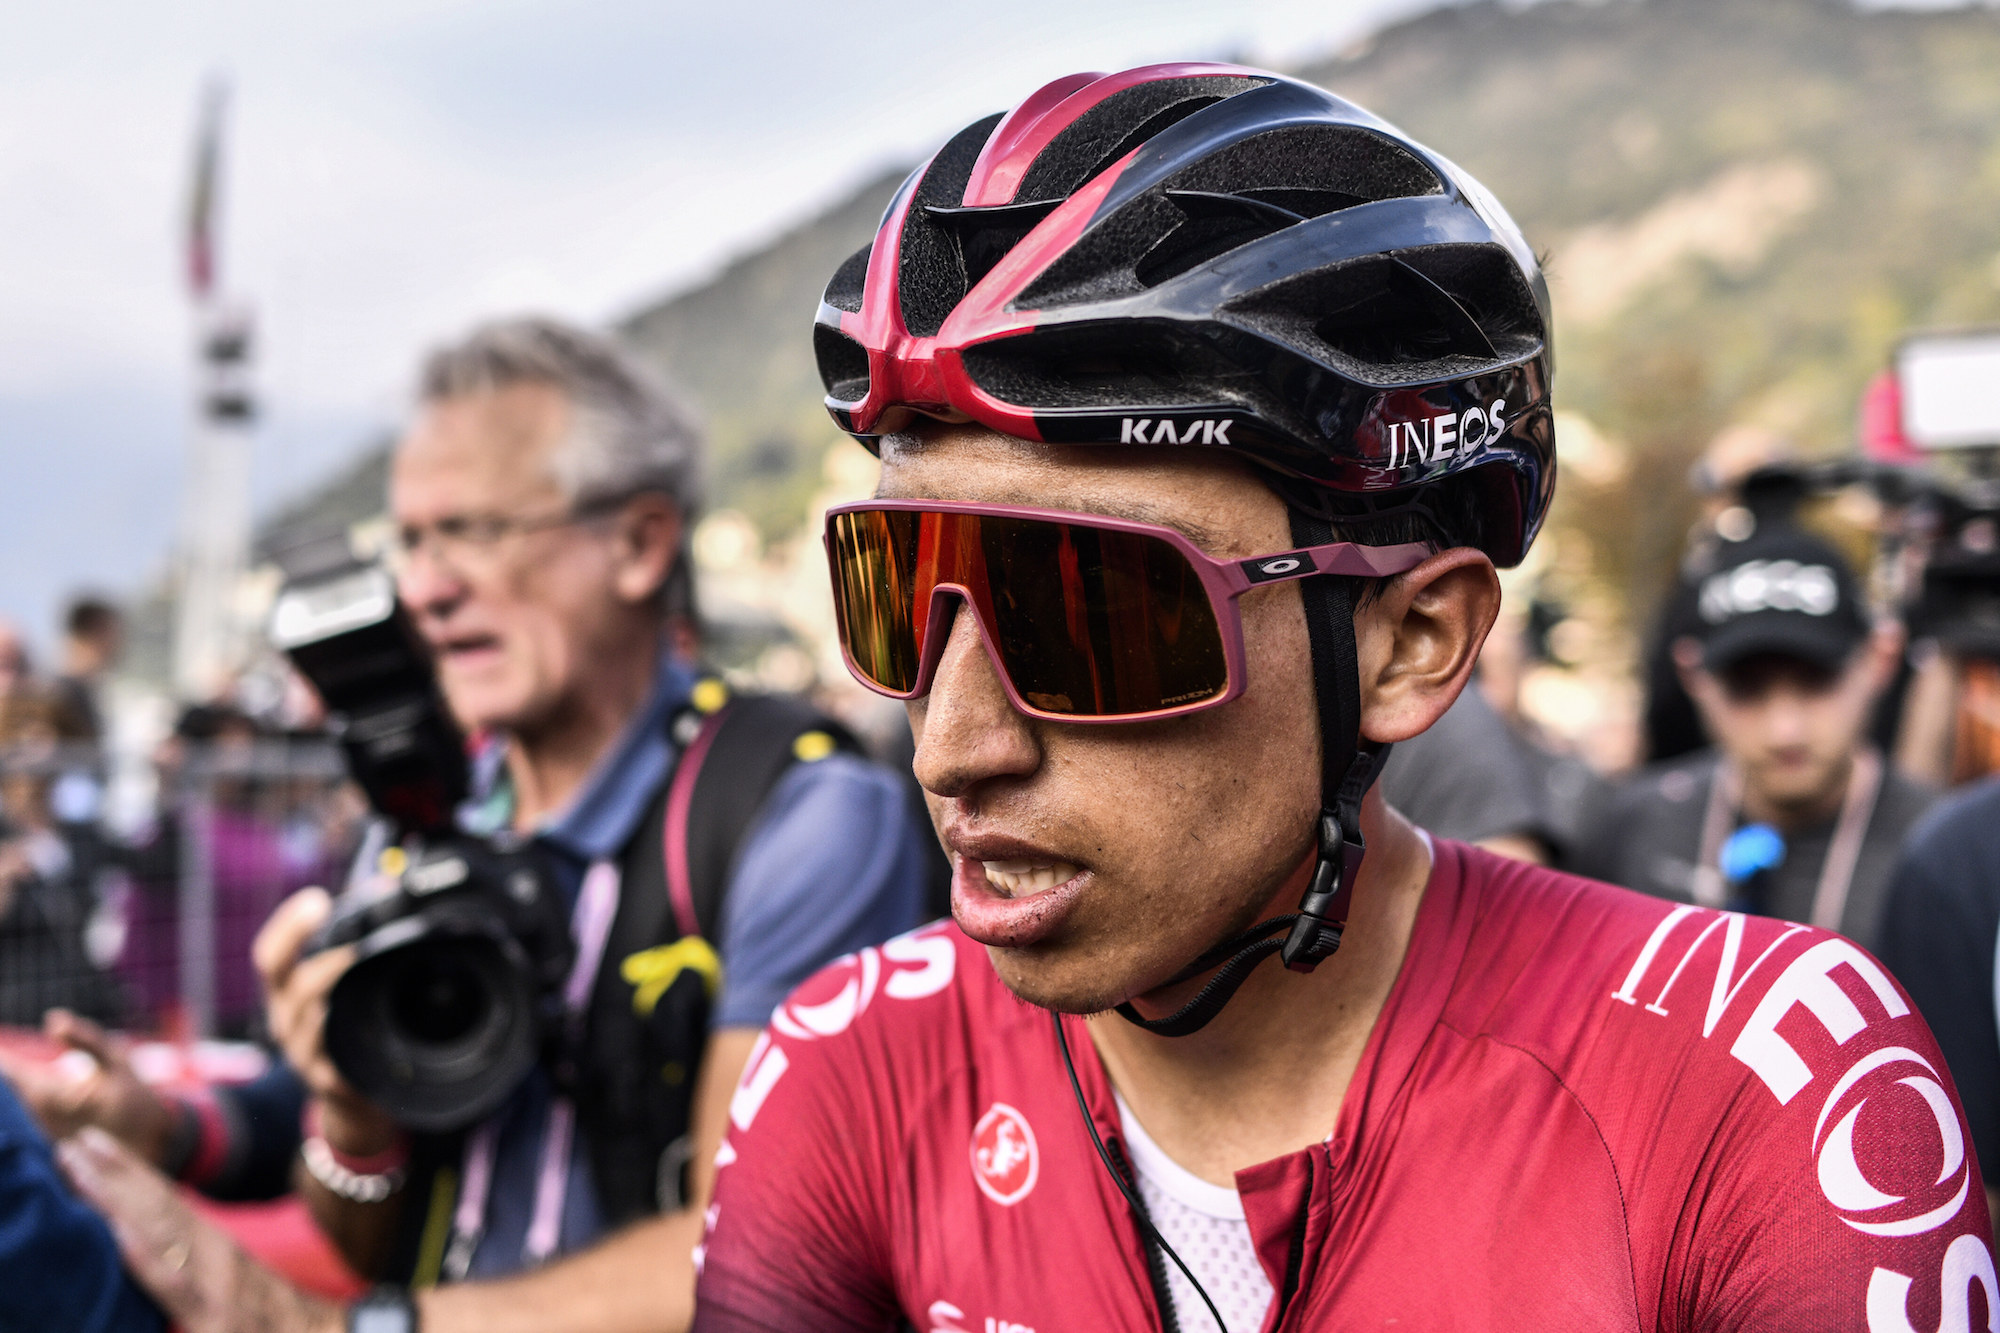 'When I said in 2016 Egan Bernal would one day win the Tour everyone looked at me like a madman' says former manager